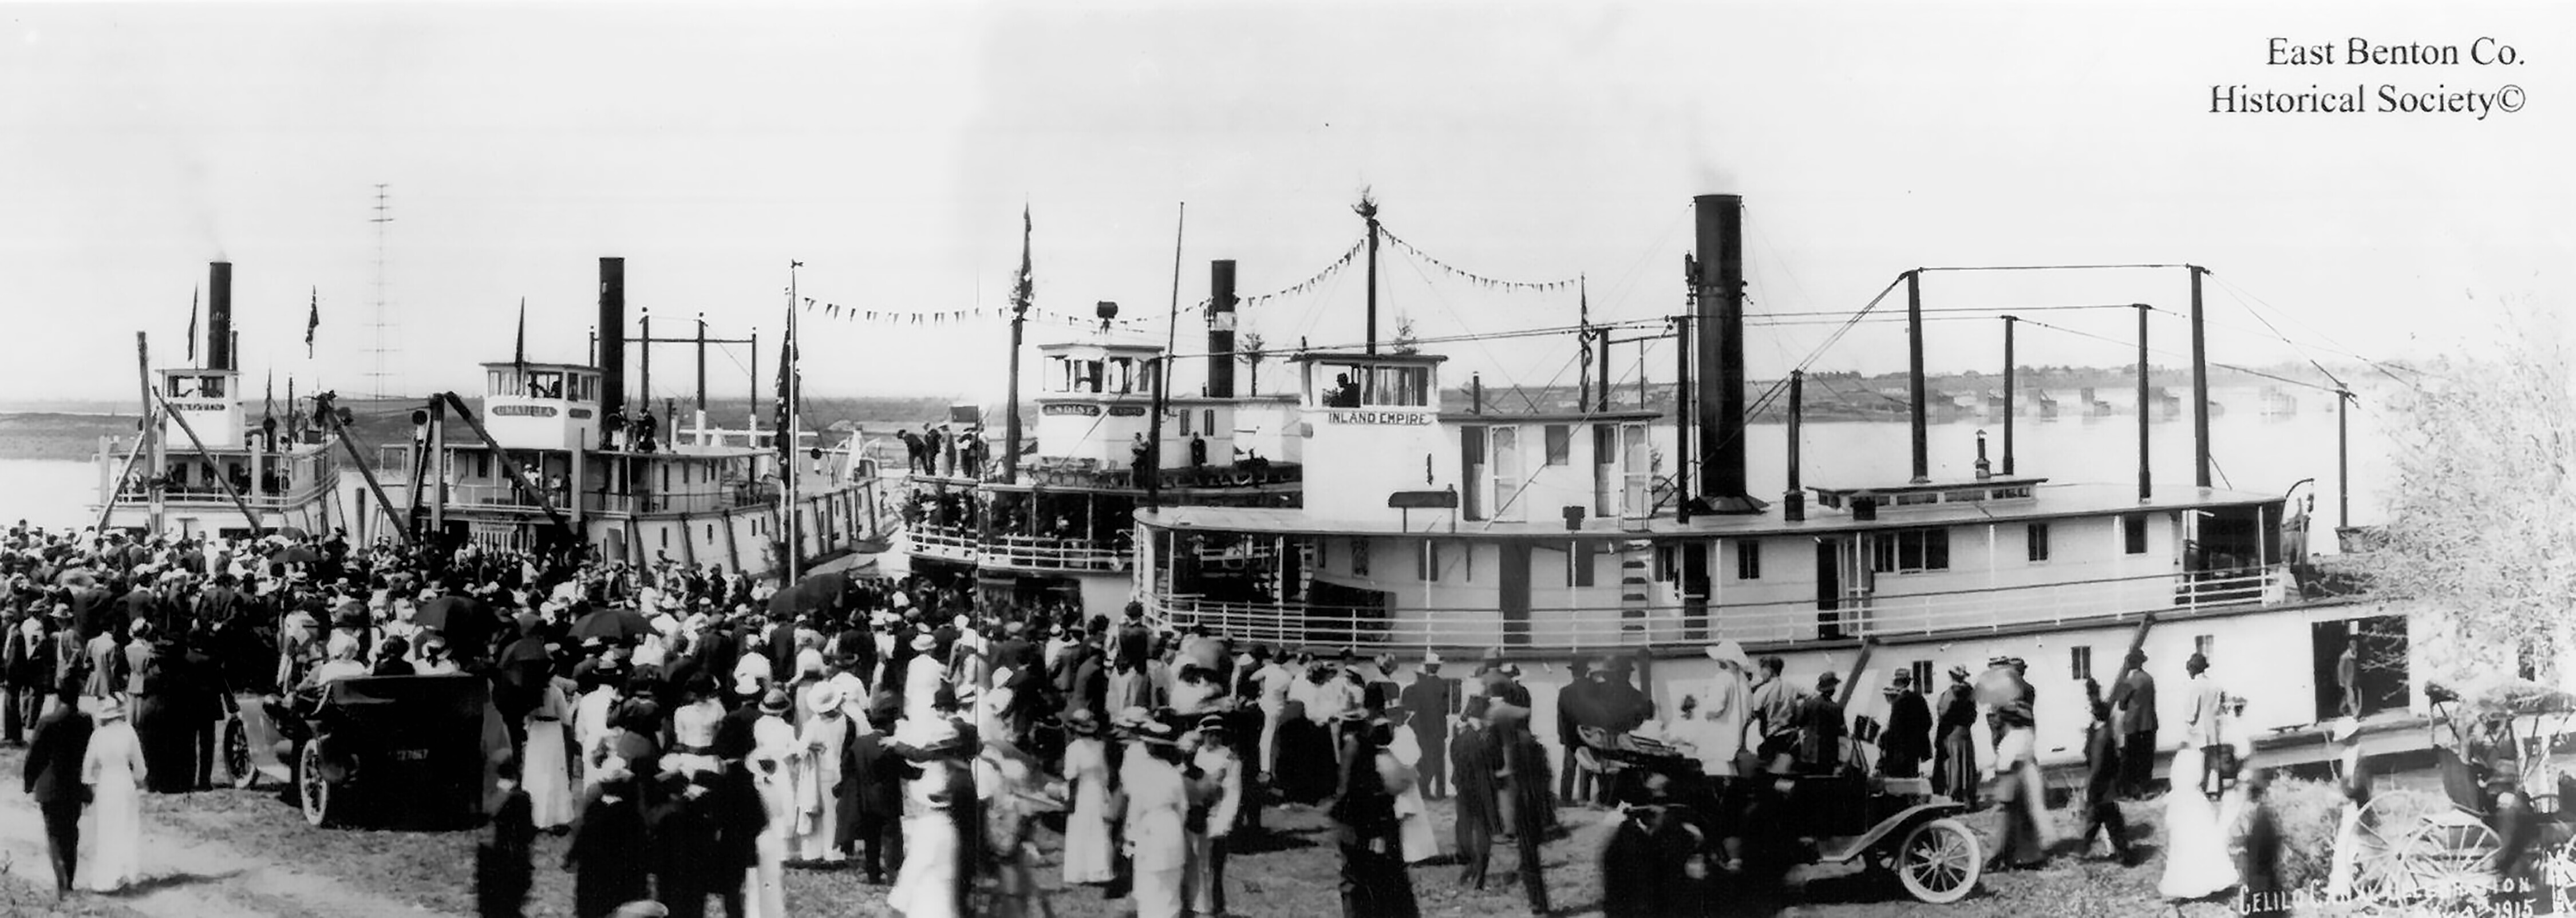 Residents gathered for Celilo Falls Canal opening, 1900s.